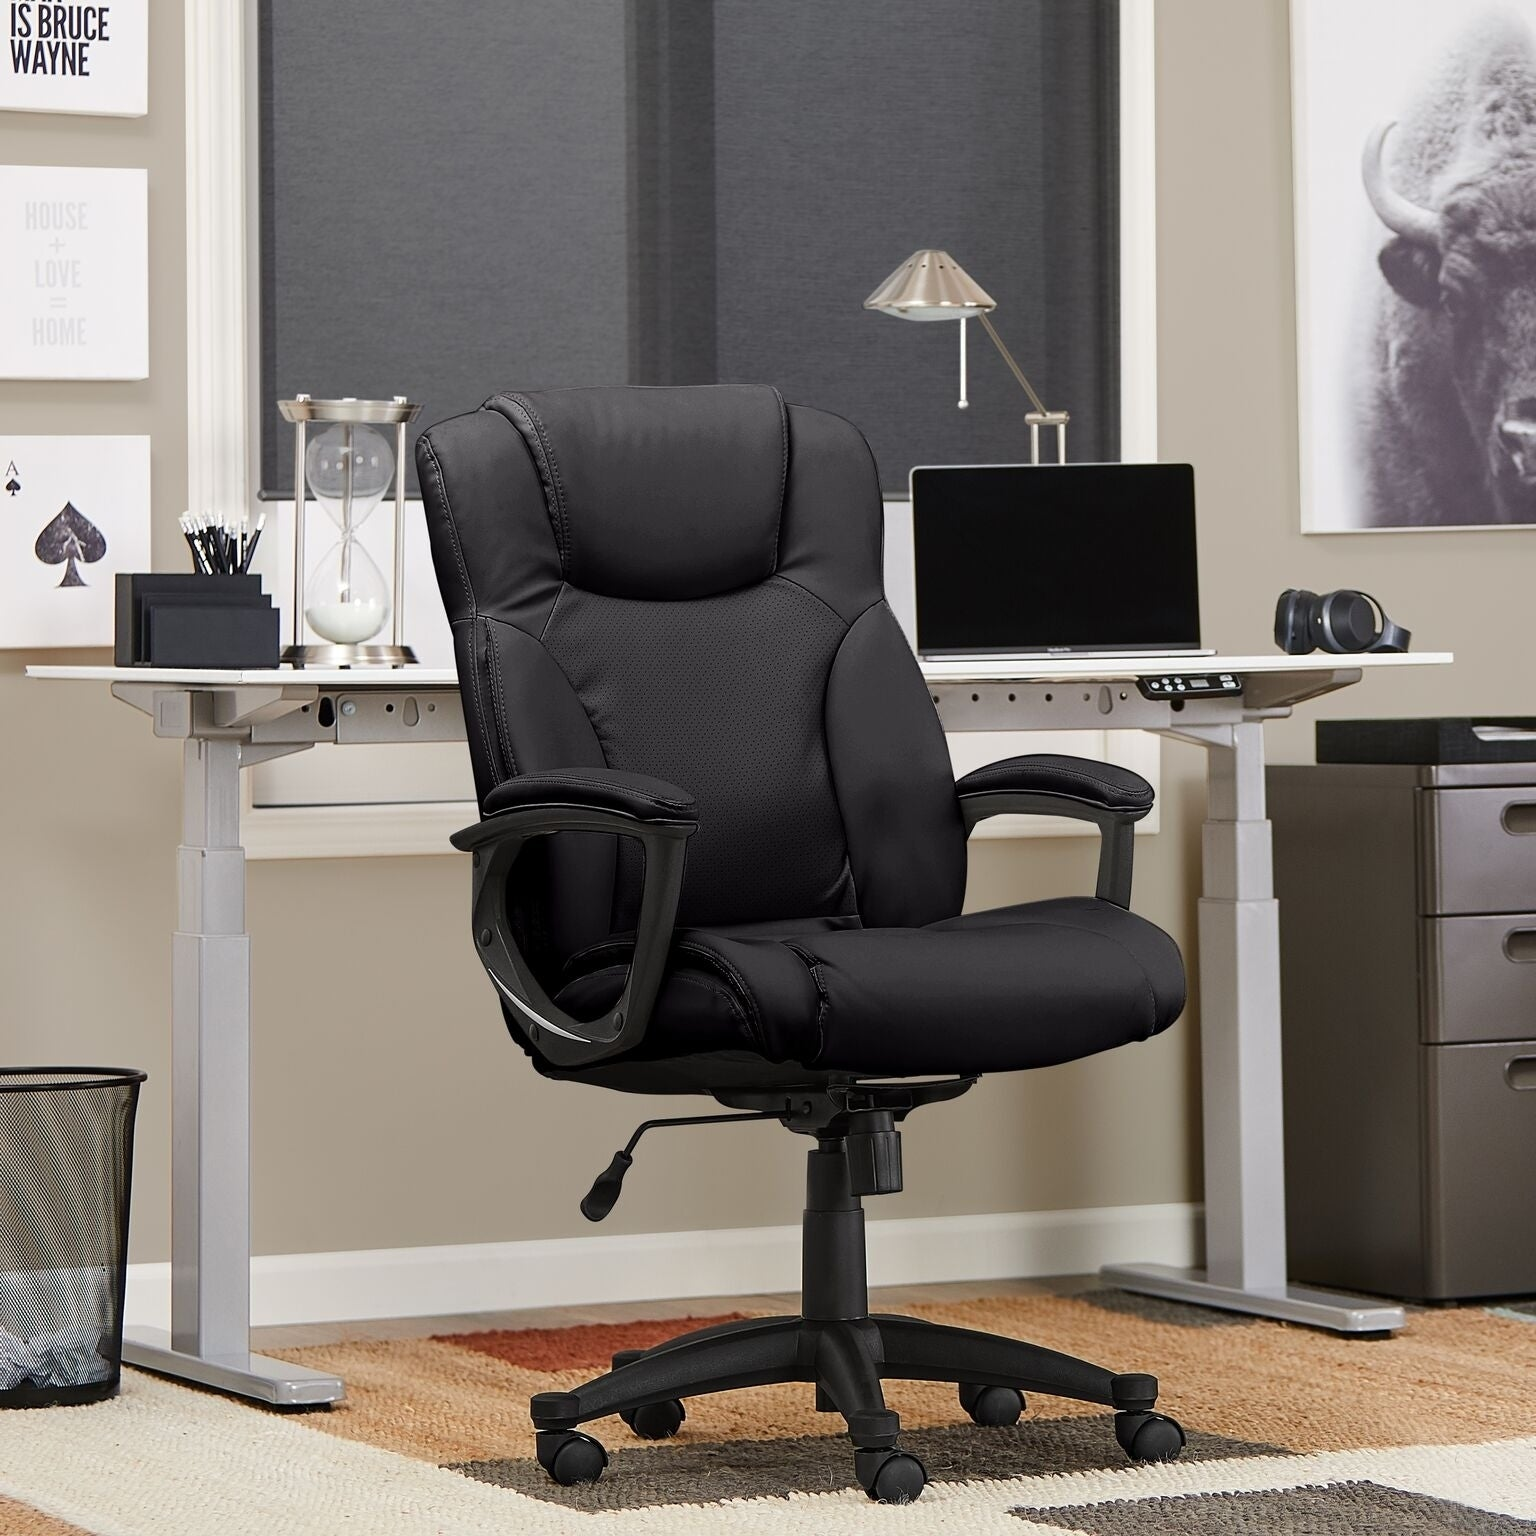 Enjoyable Serta Black Supple Bonded Leather Executive Office Chair Ncnpc Chair Design For Home Ncnpcorg